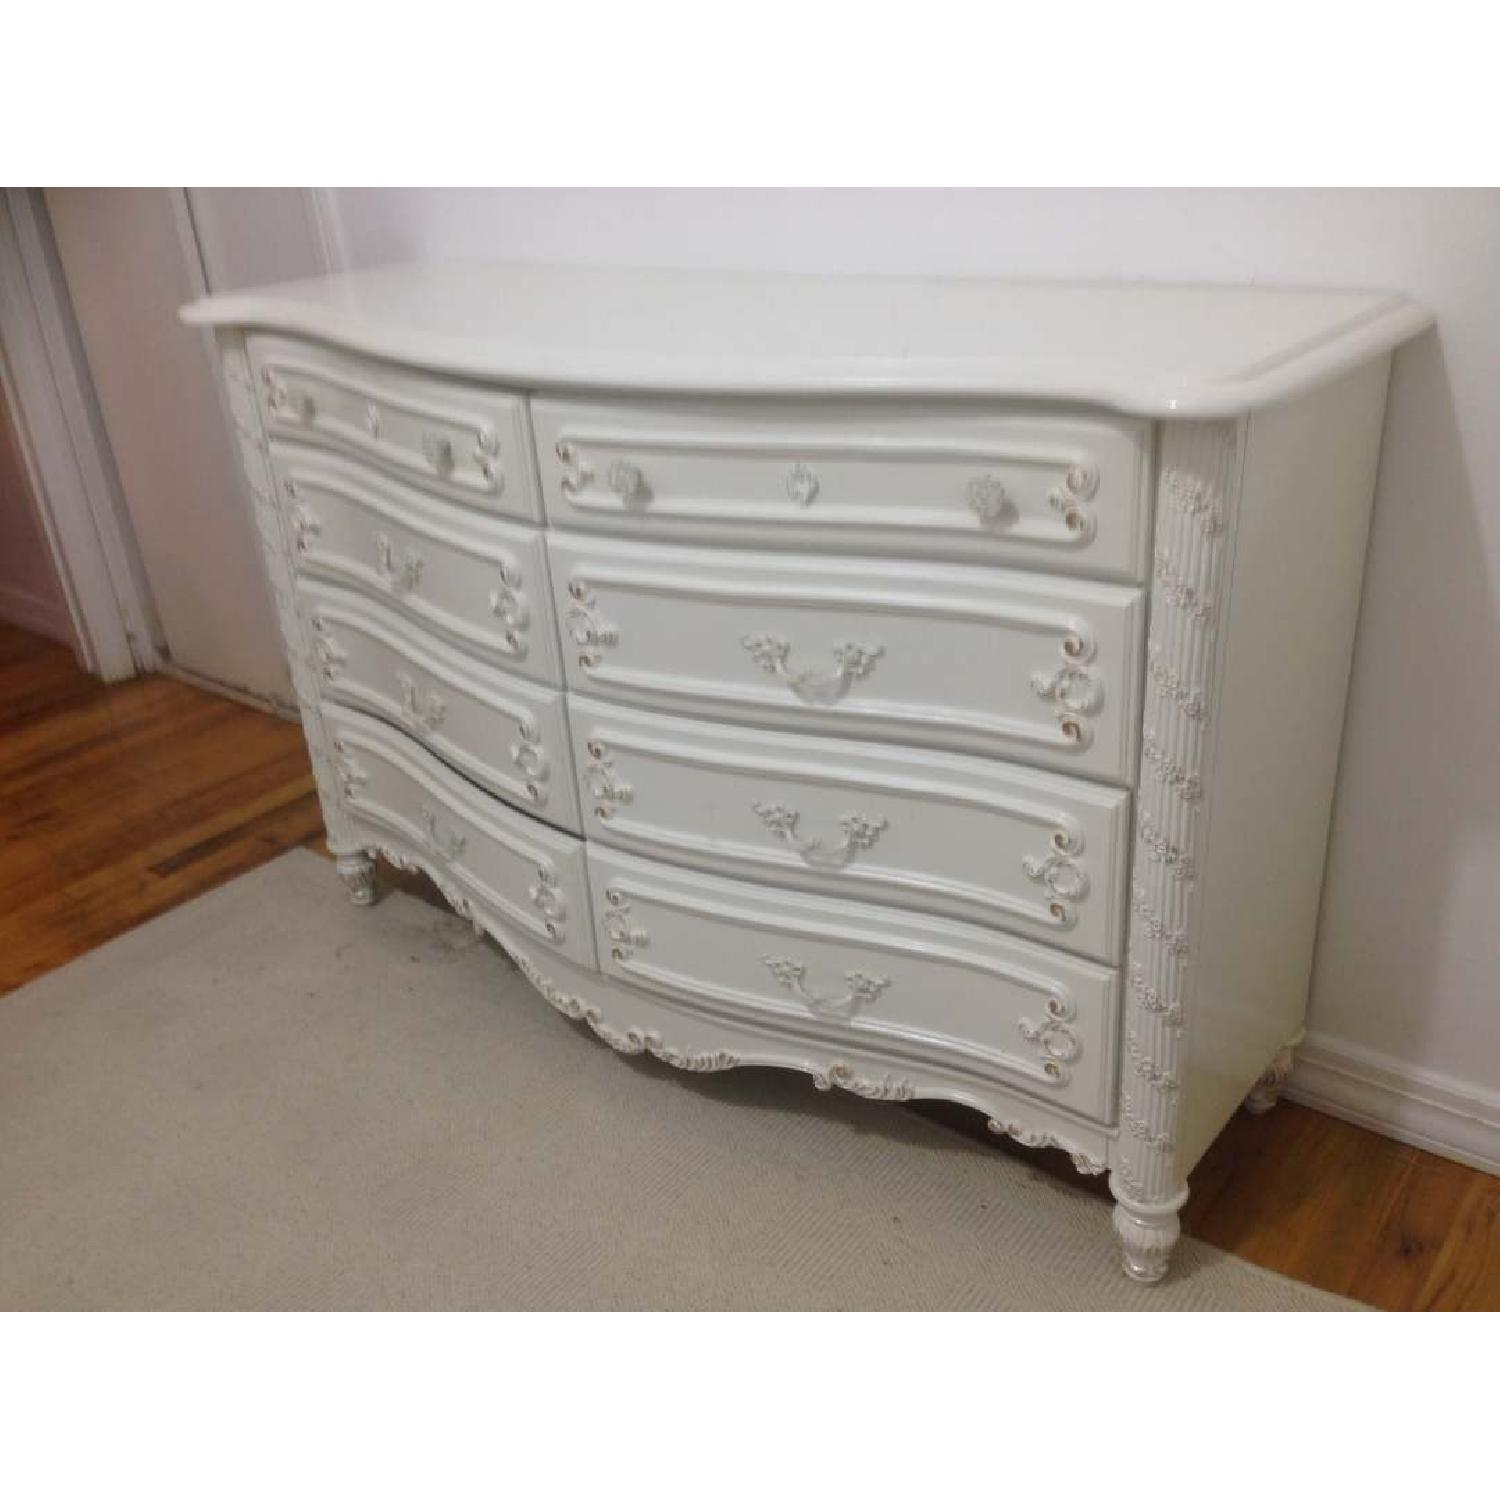 White Double Dresser w/ Decorative Carvings & Gold Color Accents - image-3